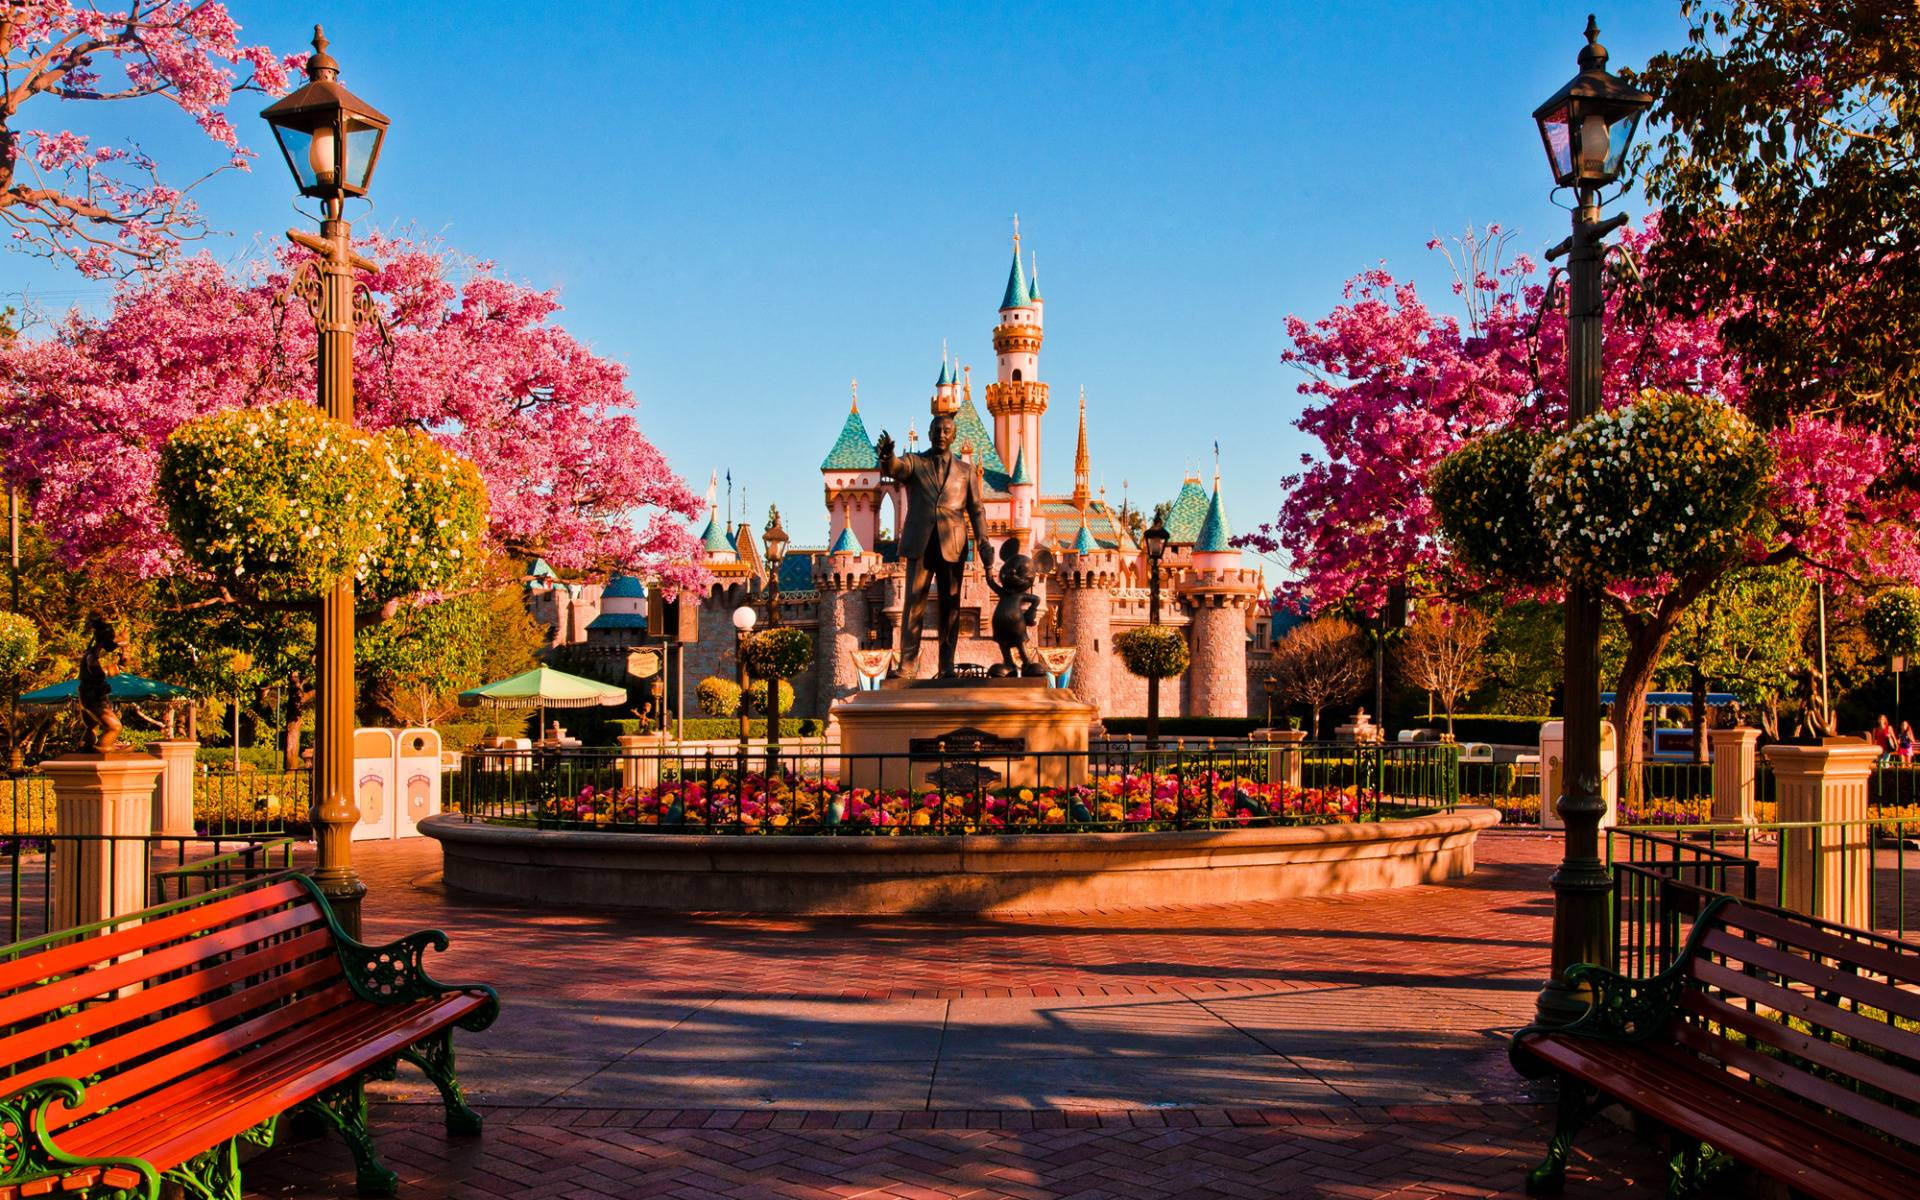 Disneyland Desktop Wallpaper